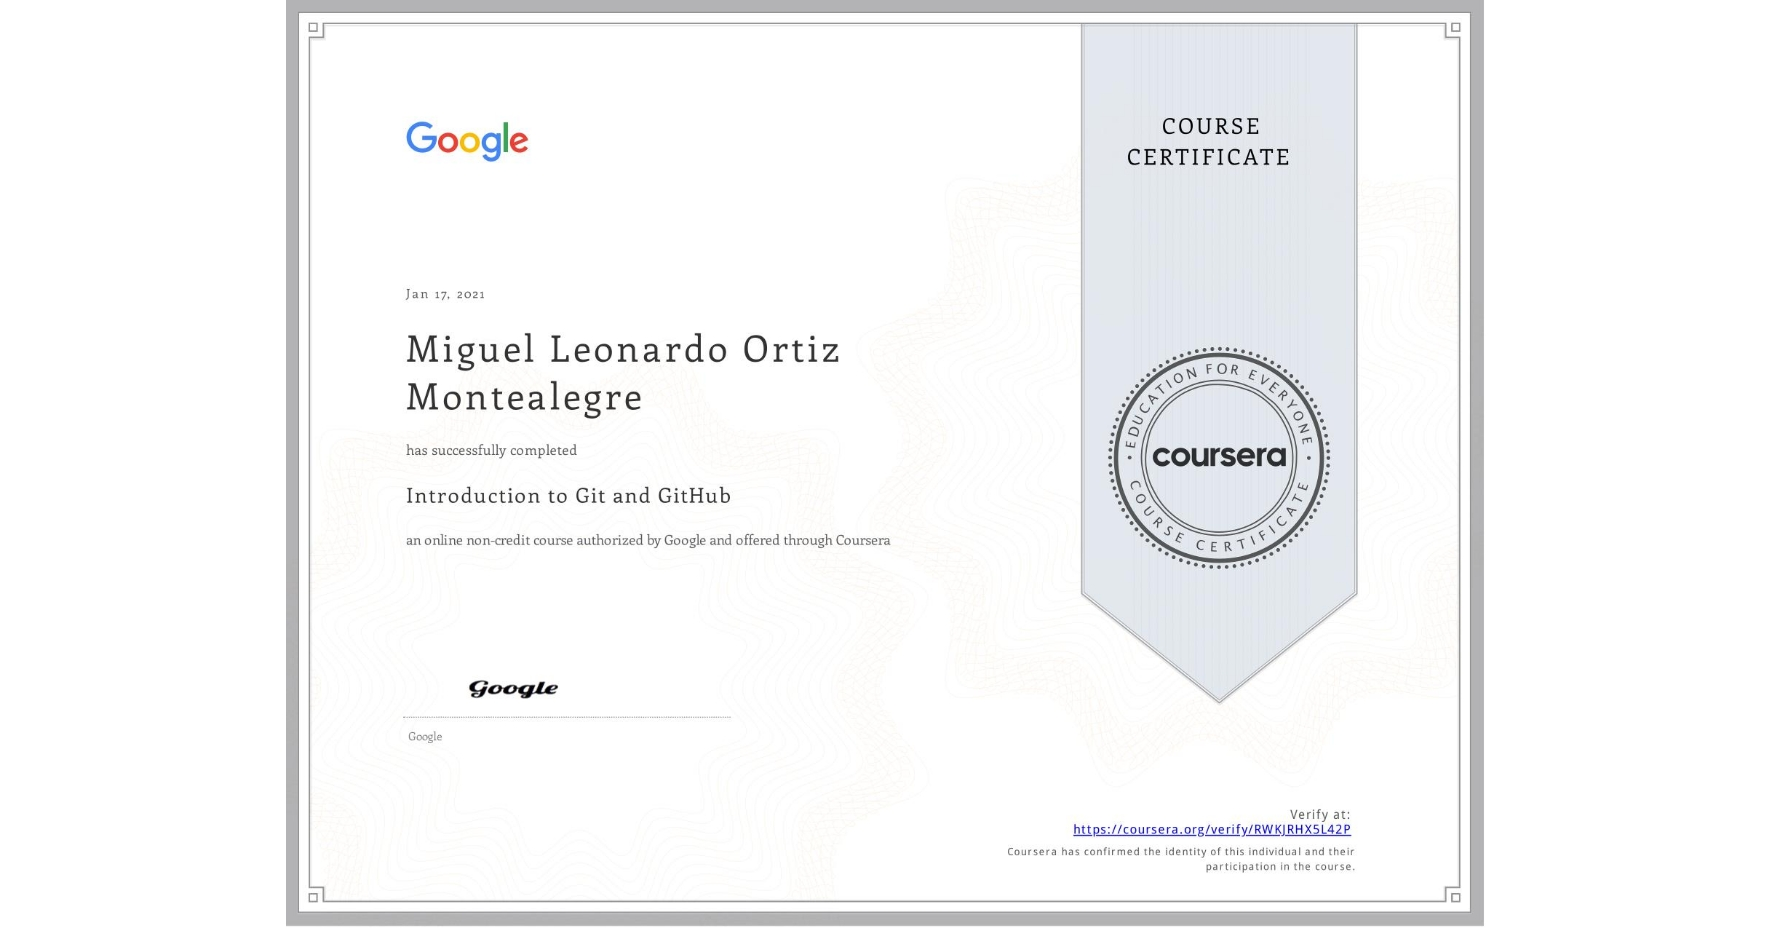 View certificate for Miguel Leonardo Ortiz Montealegre, Introduction to Git and GitHub, an online non-credit course authorized by Google and offered through Coursera